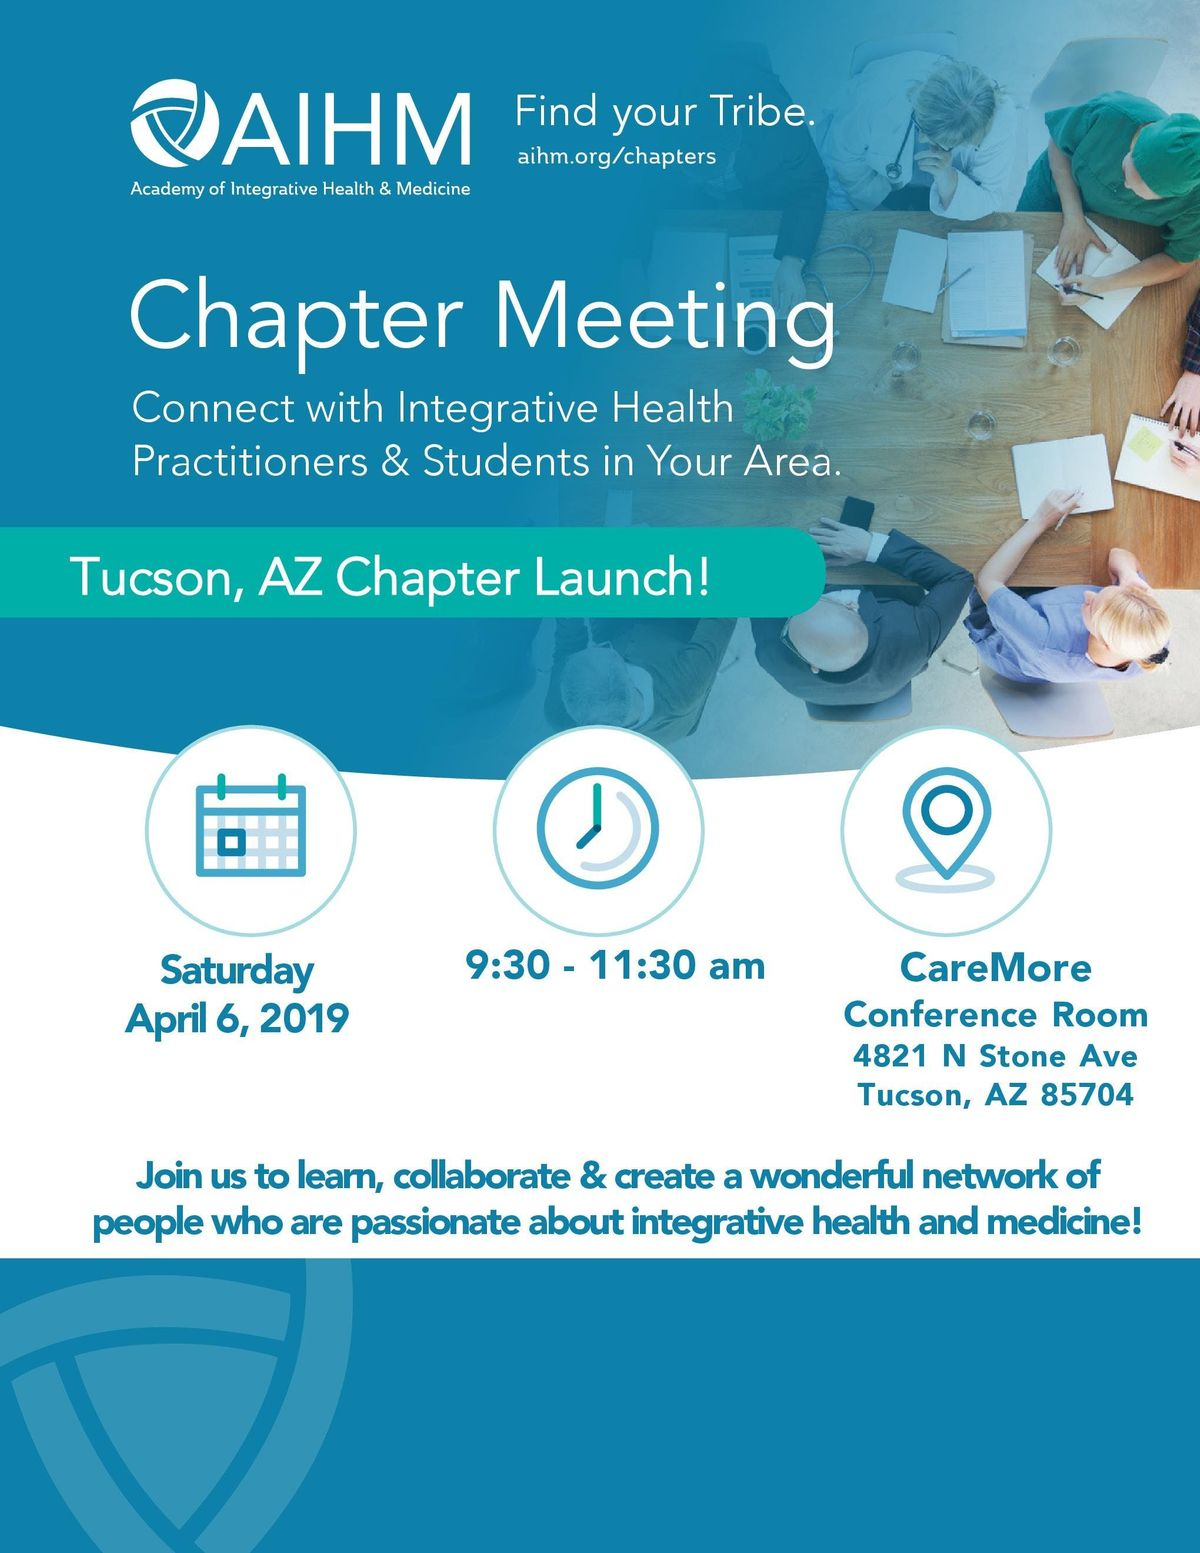 Academy of Integrative Health and Medicine Tucson Chapter